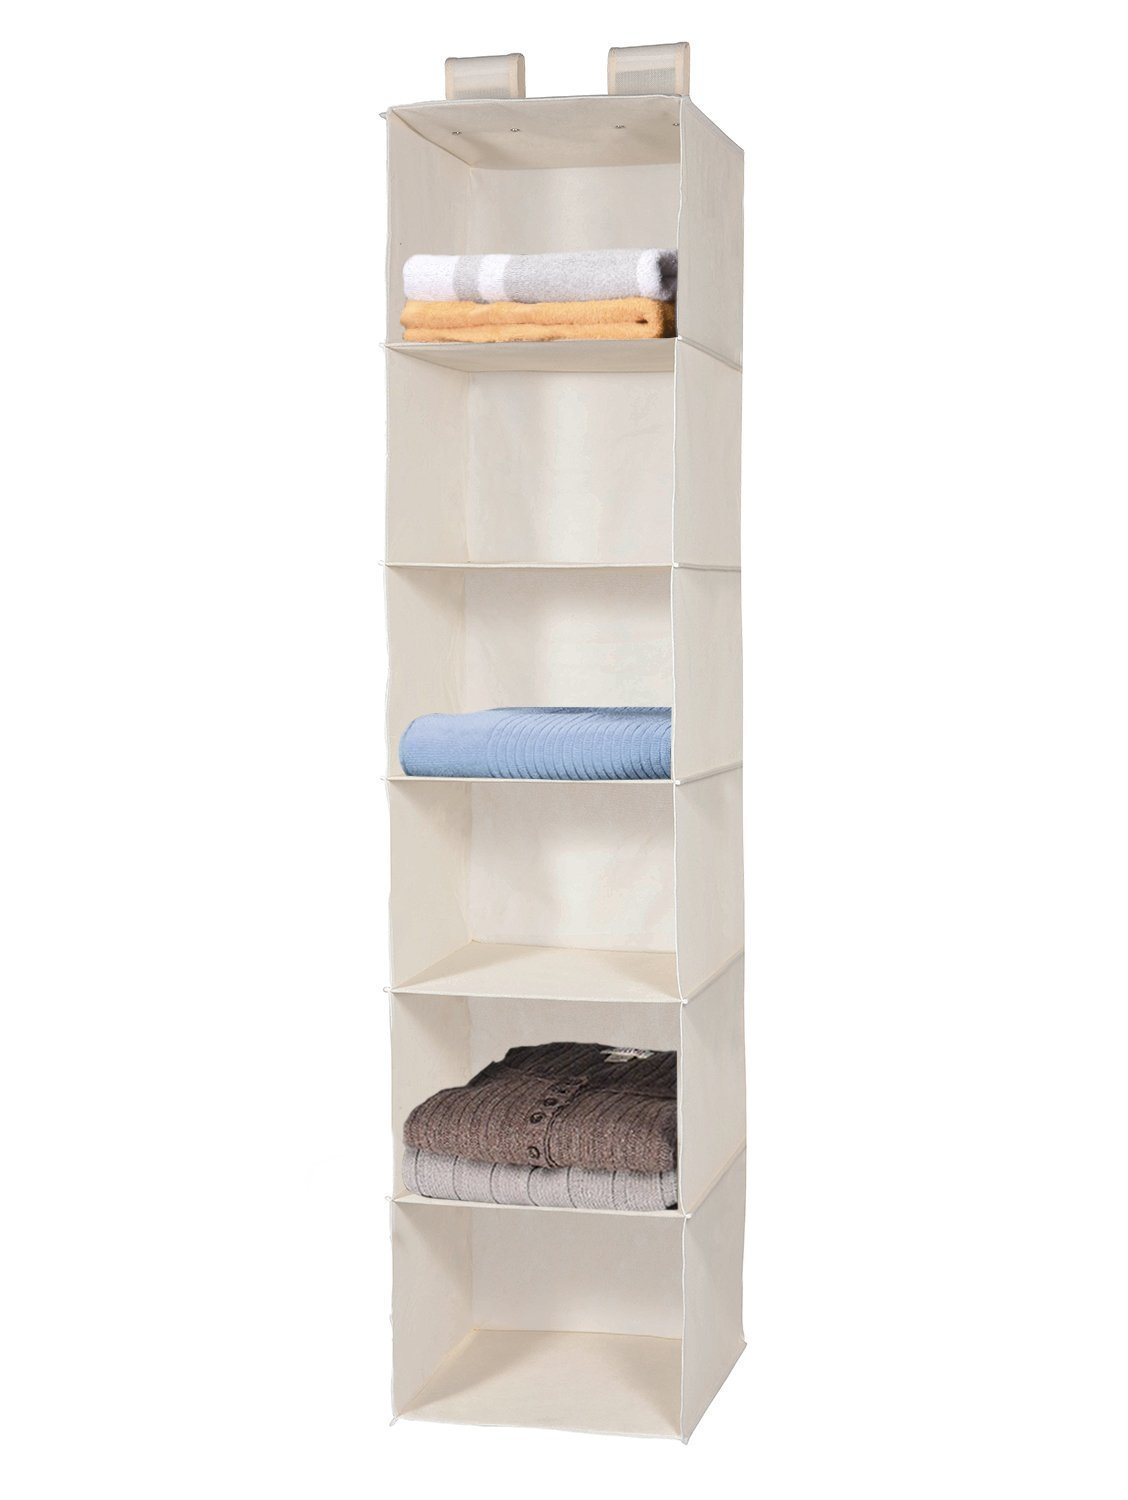 MaidMax 6 Shelves Collapsible Hanging Closet Organizer With 2 Widen Vercros  For Clothes And Shoes Storage